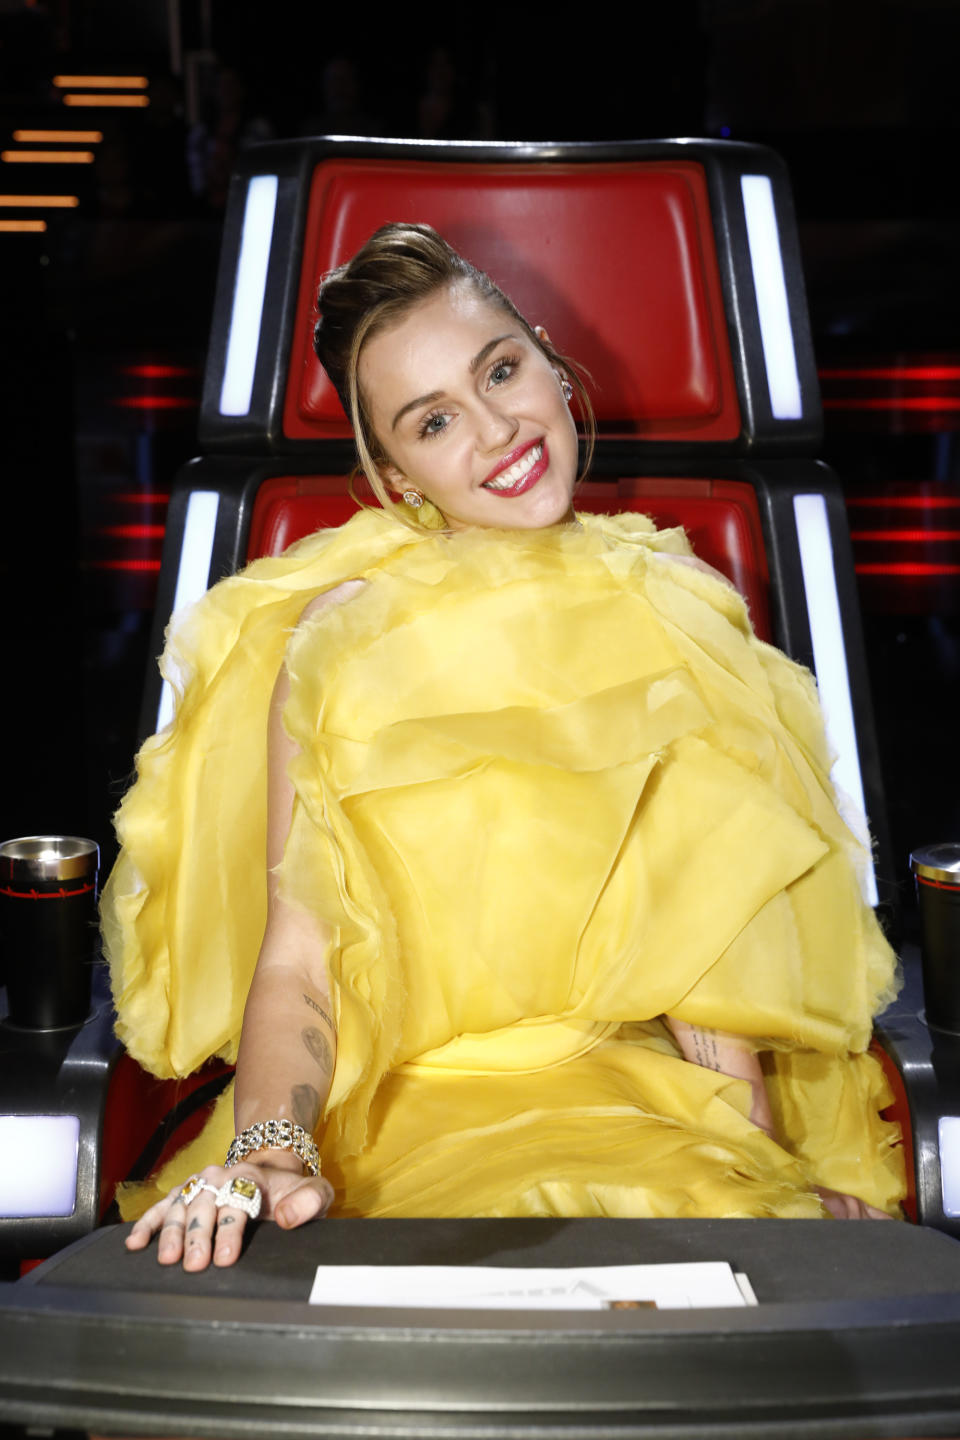 Miley Cyrus on The Voice US. (Photo by: Trae Patton/NBCU Photo Bank/NBCUniversal via Getty Images via Getty Images)